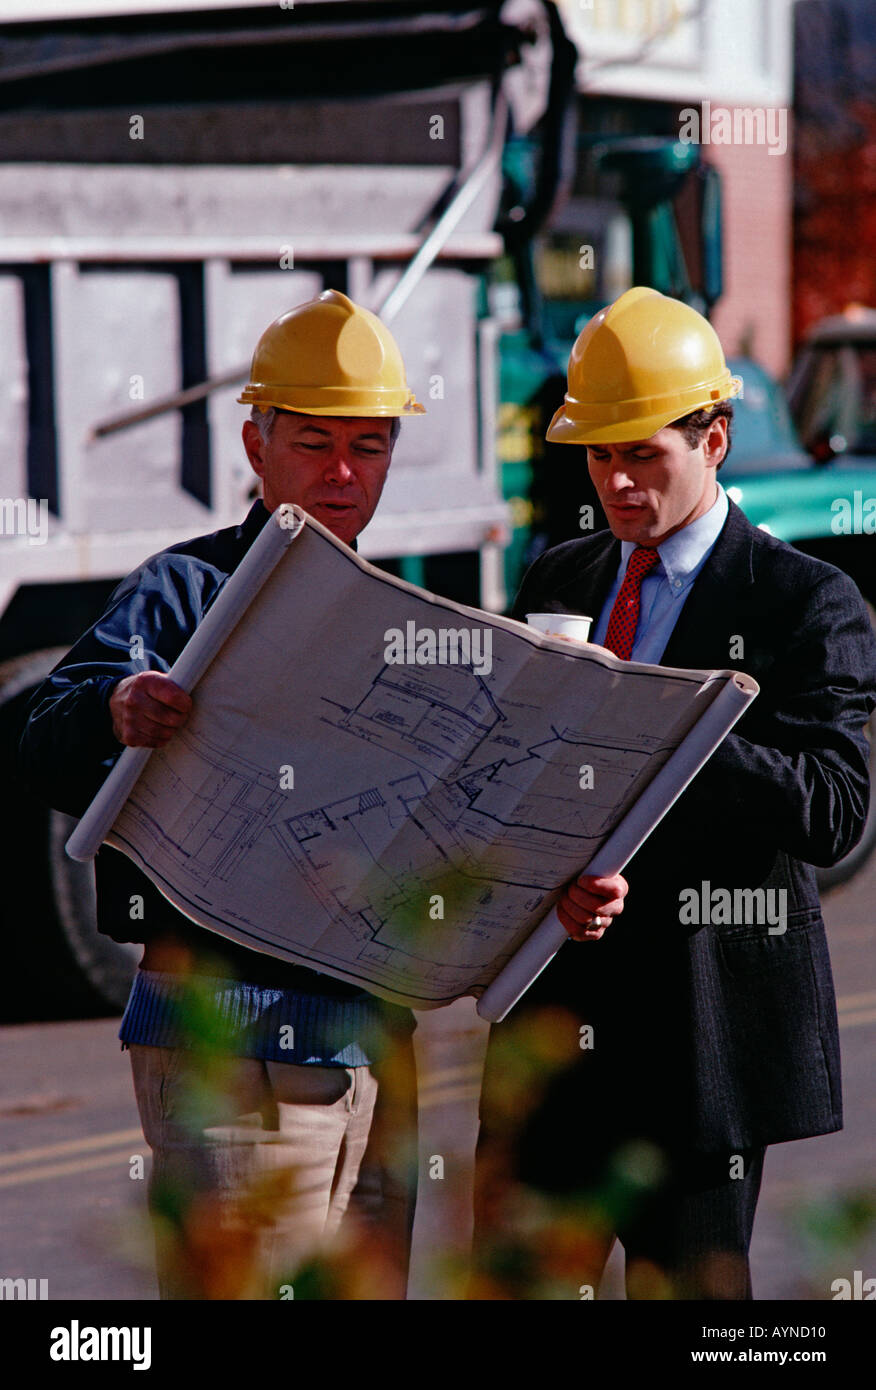 Caucasian architect and construction foreman on the job site wearing hardhats and looking at blueprints - Stock Image